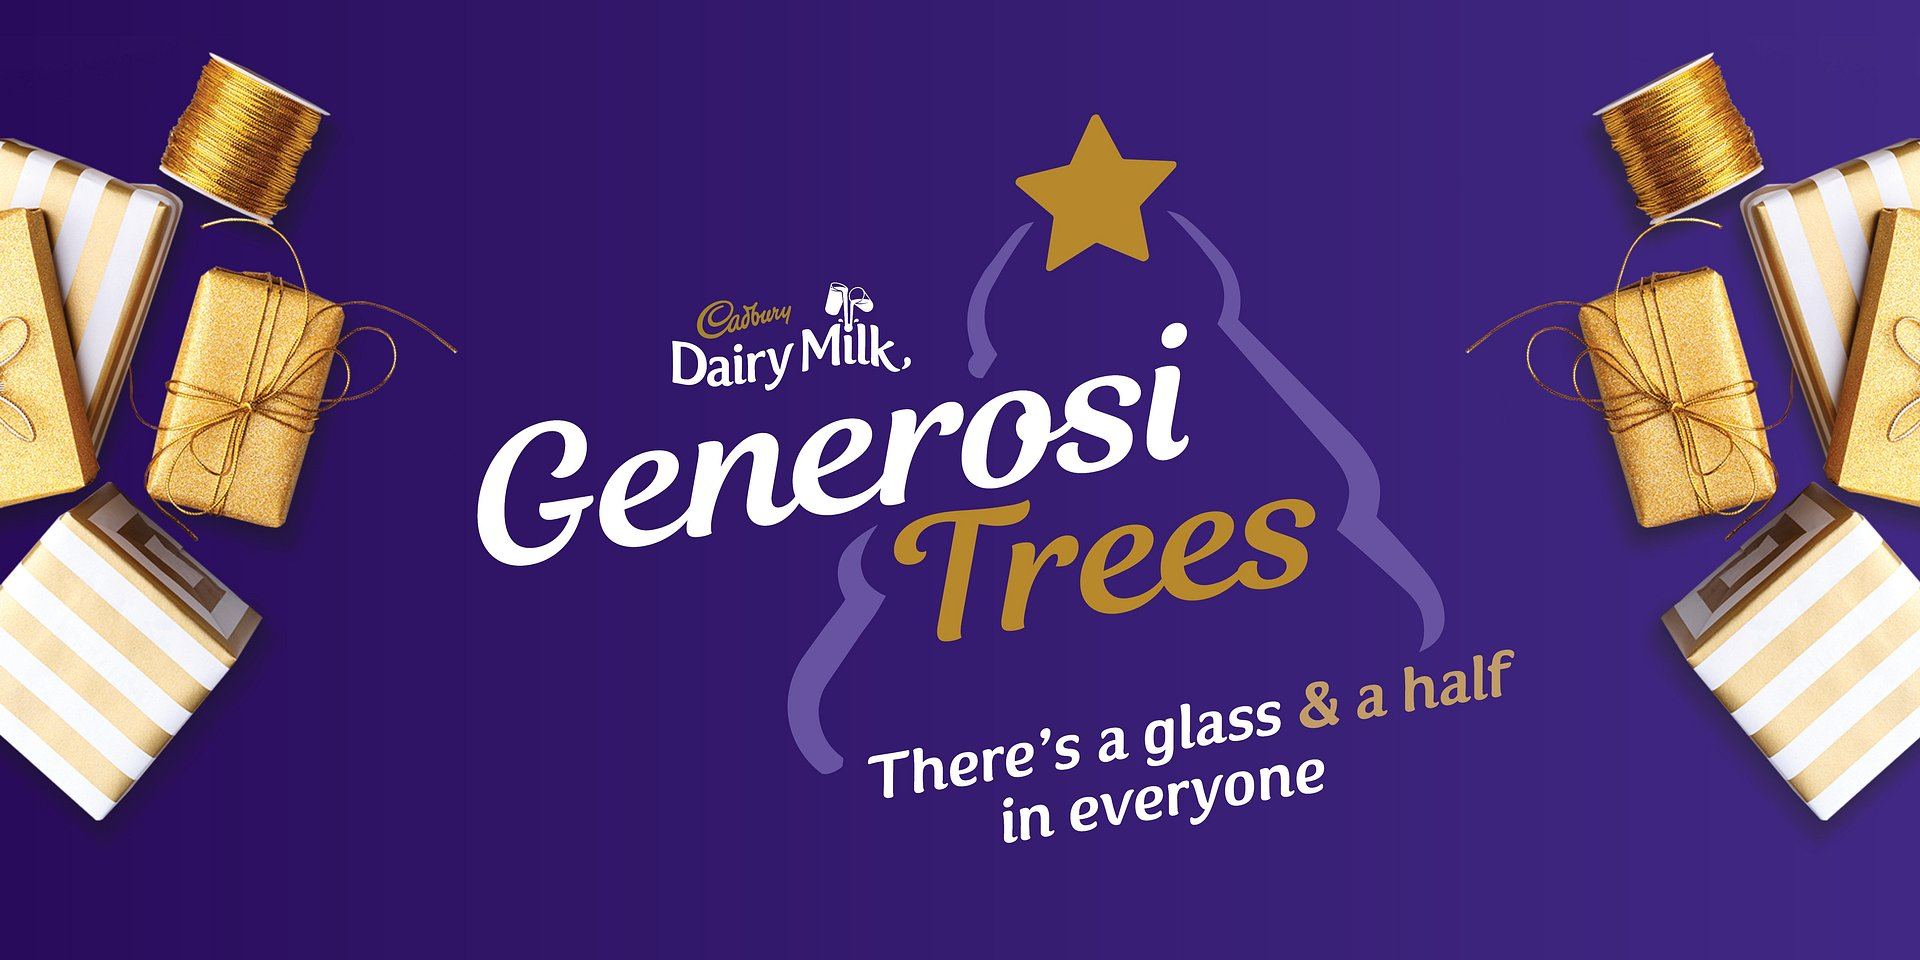 GenerosiTrees to Inspire the Spirit of Generosity this Festive Season